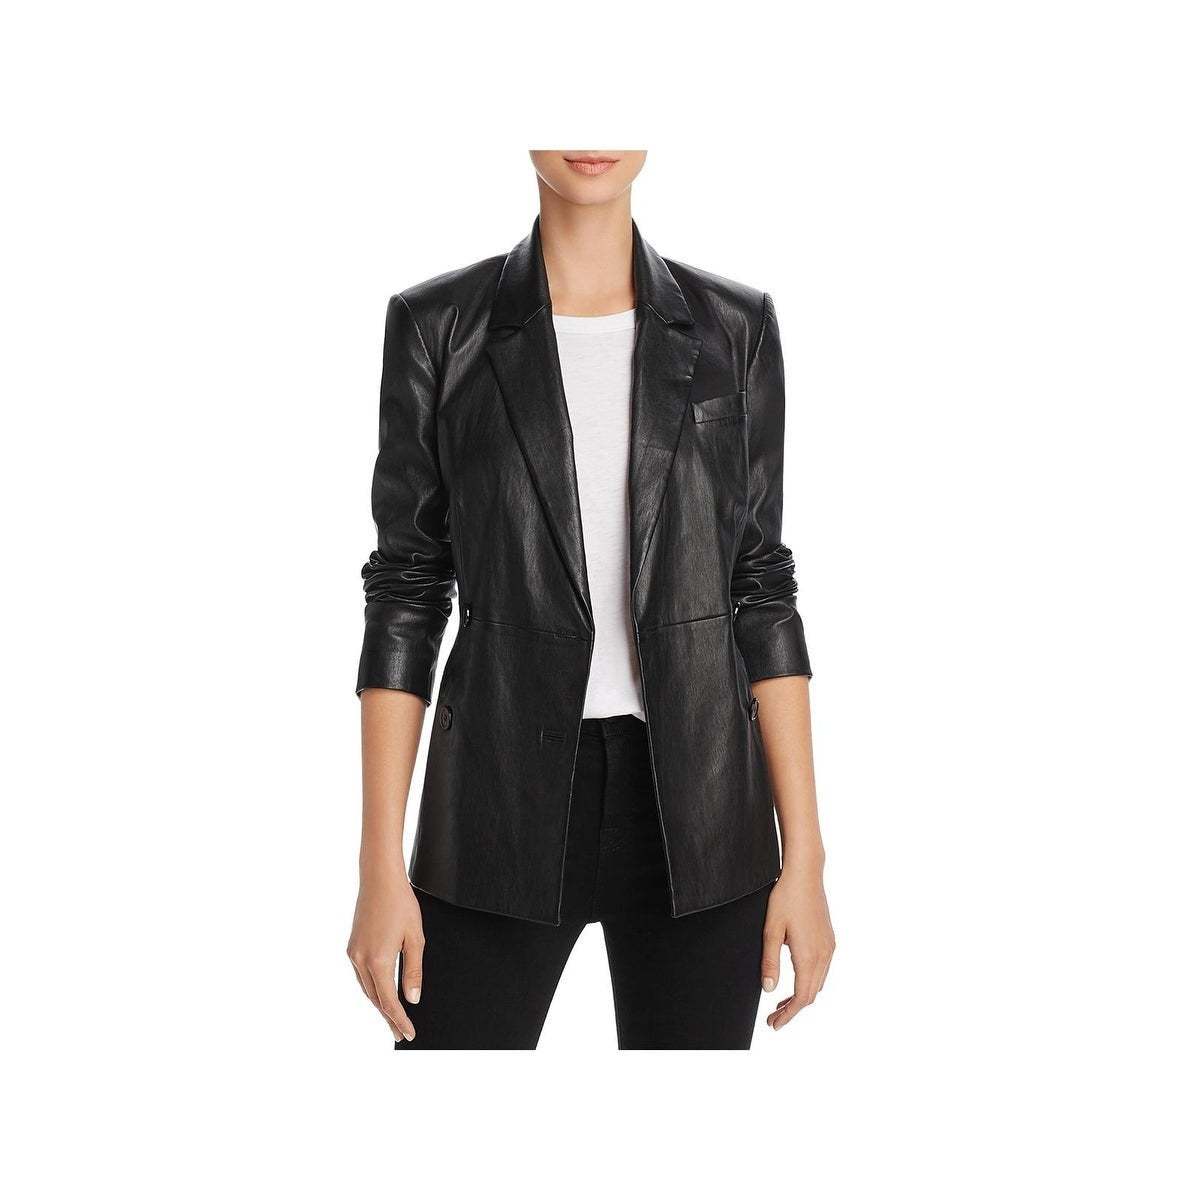 Bestseller Designer genuine leather Handmade womans Classic Black Leather Blazer: Guaranteed delivery within 4 working days after dispatch